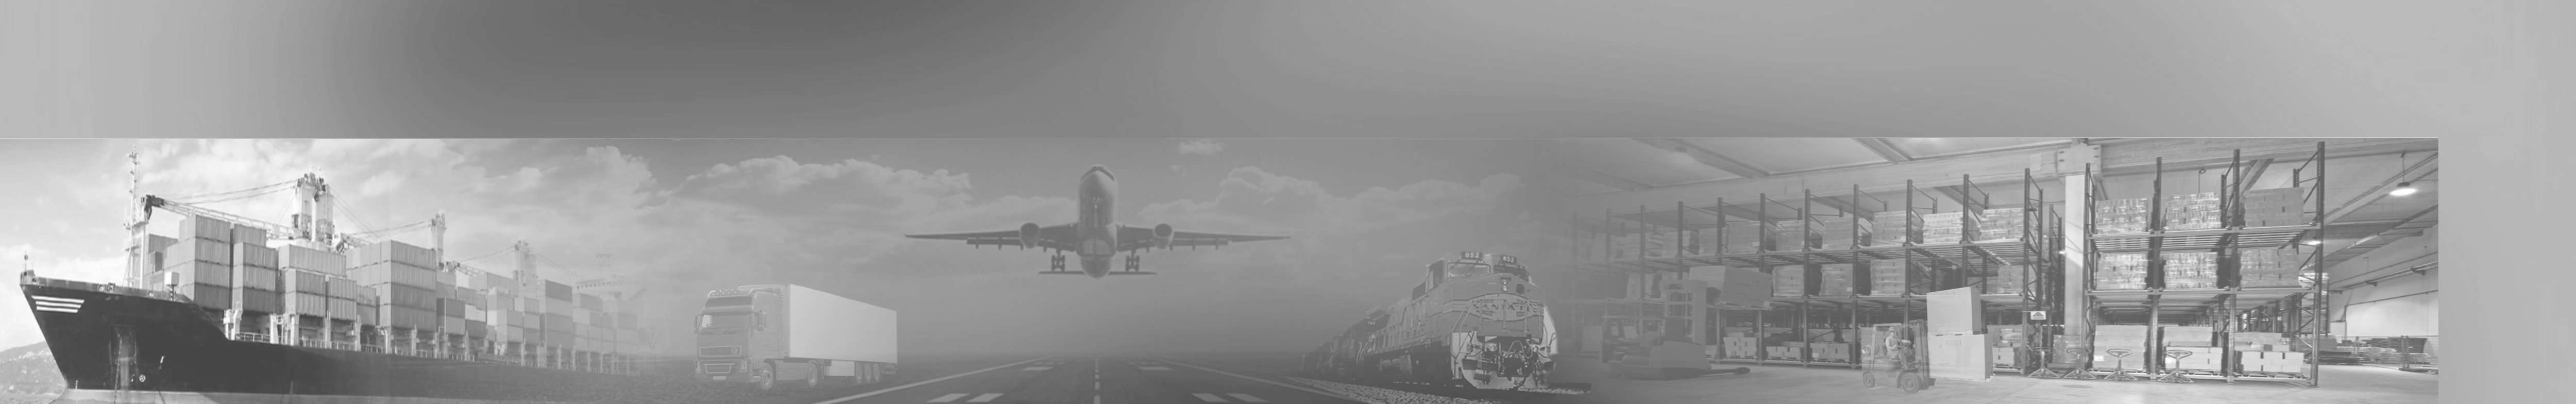 header_sci_terbaru_new_container_grey